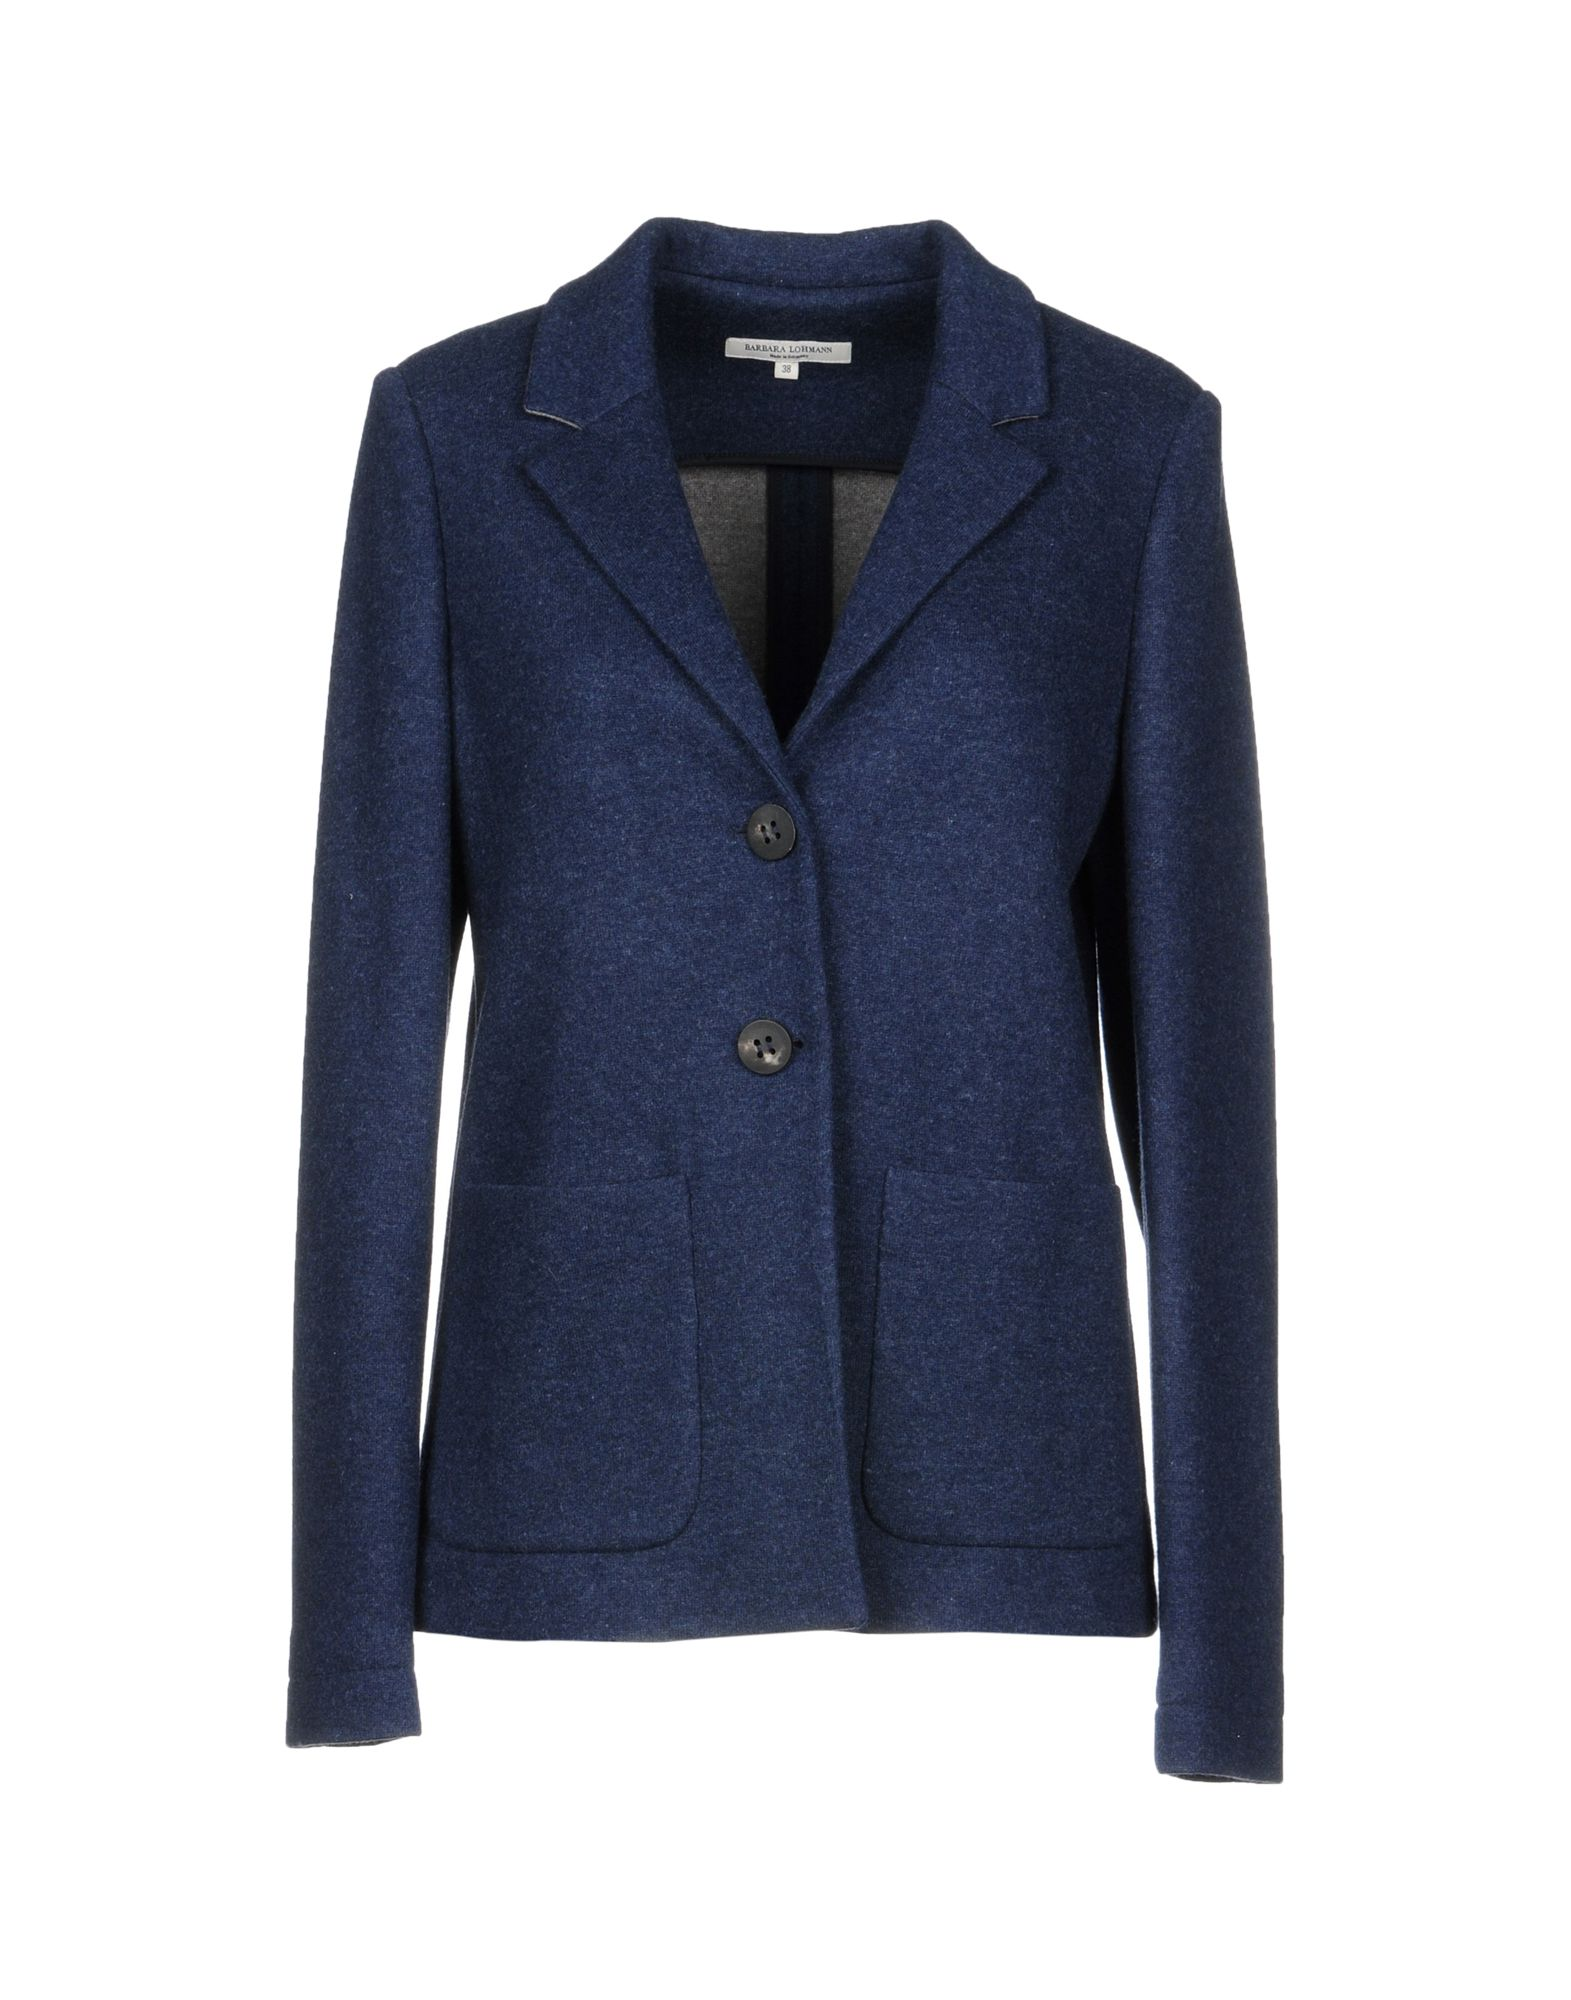 BARBARA LOHMANN Blazer in Dark Blue